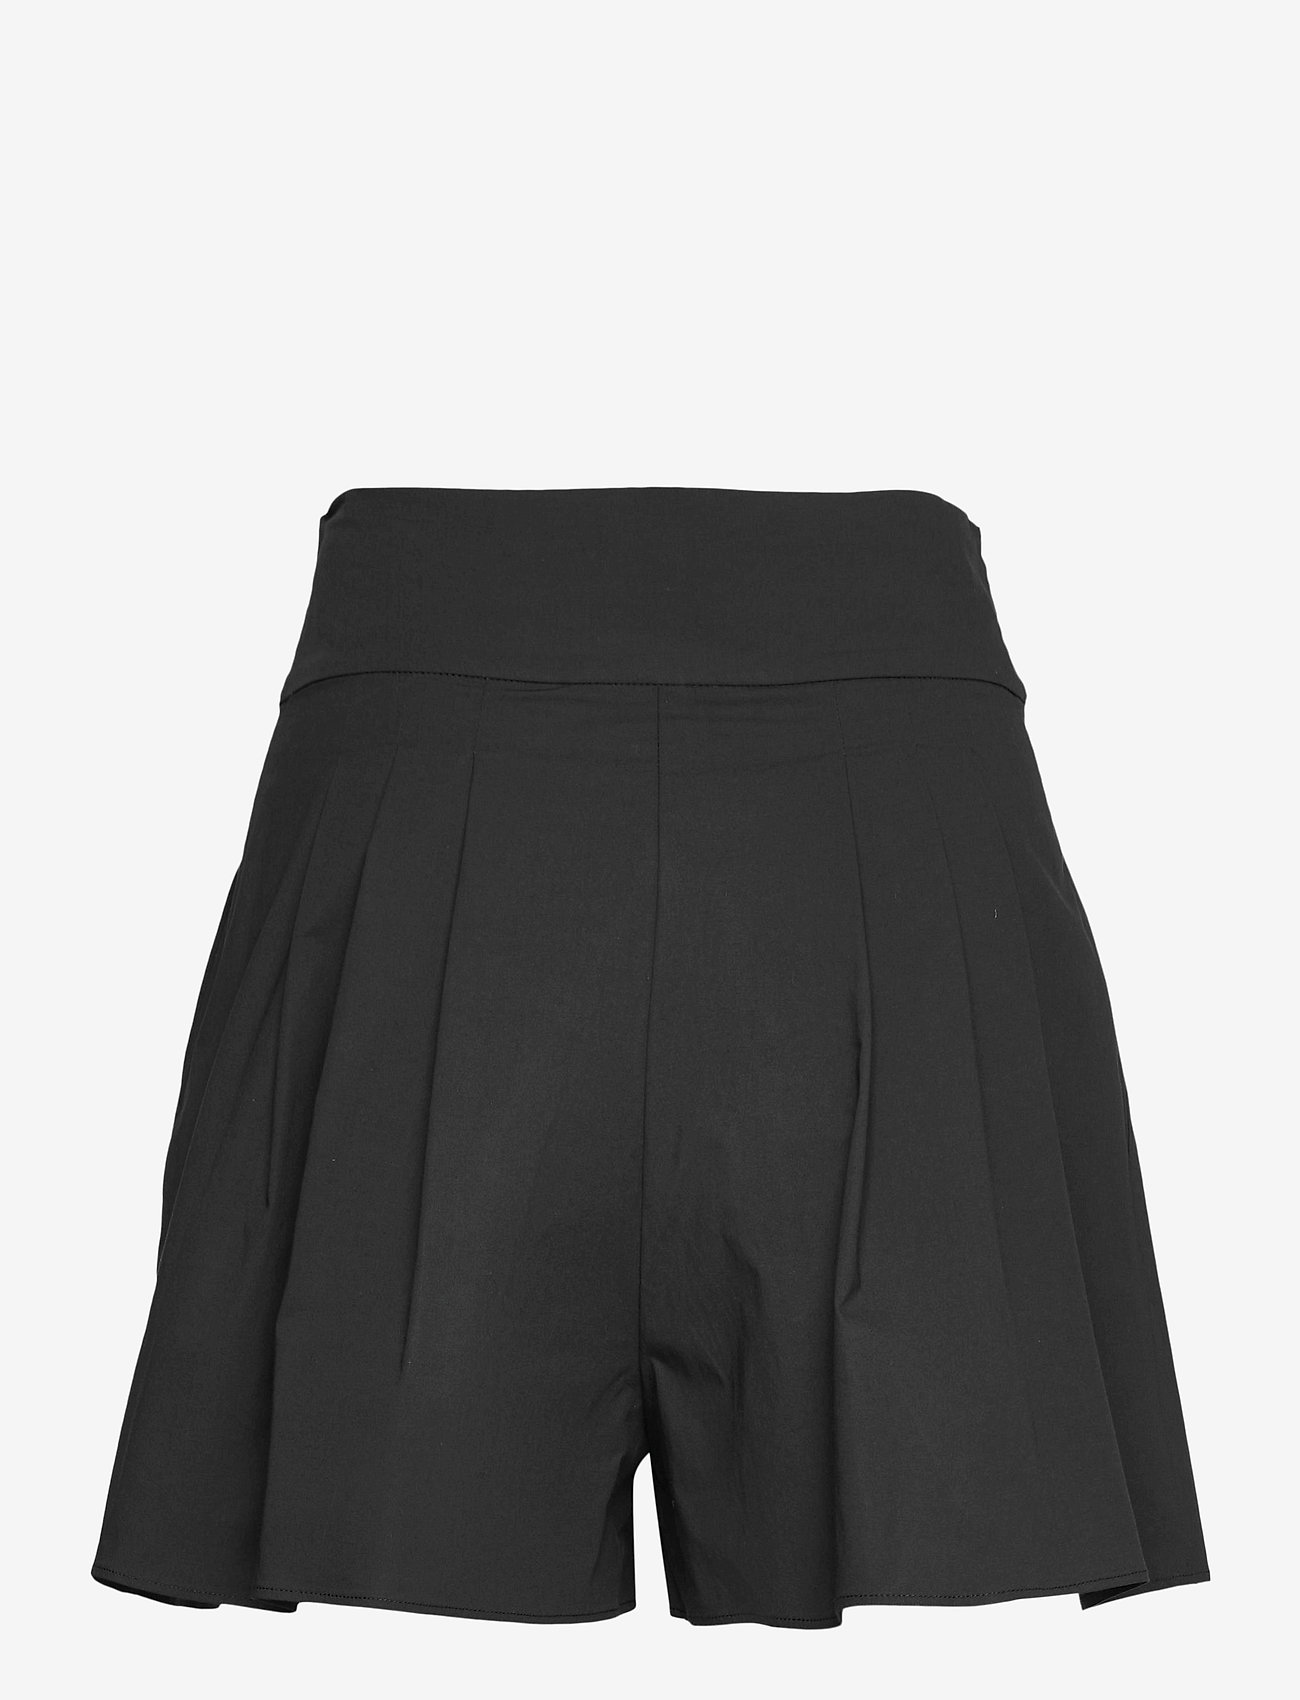 Boutique Moschino - Boutique Moschino SHORTS - paper bag shorts - black - 1